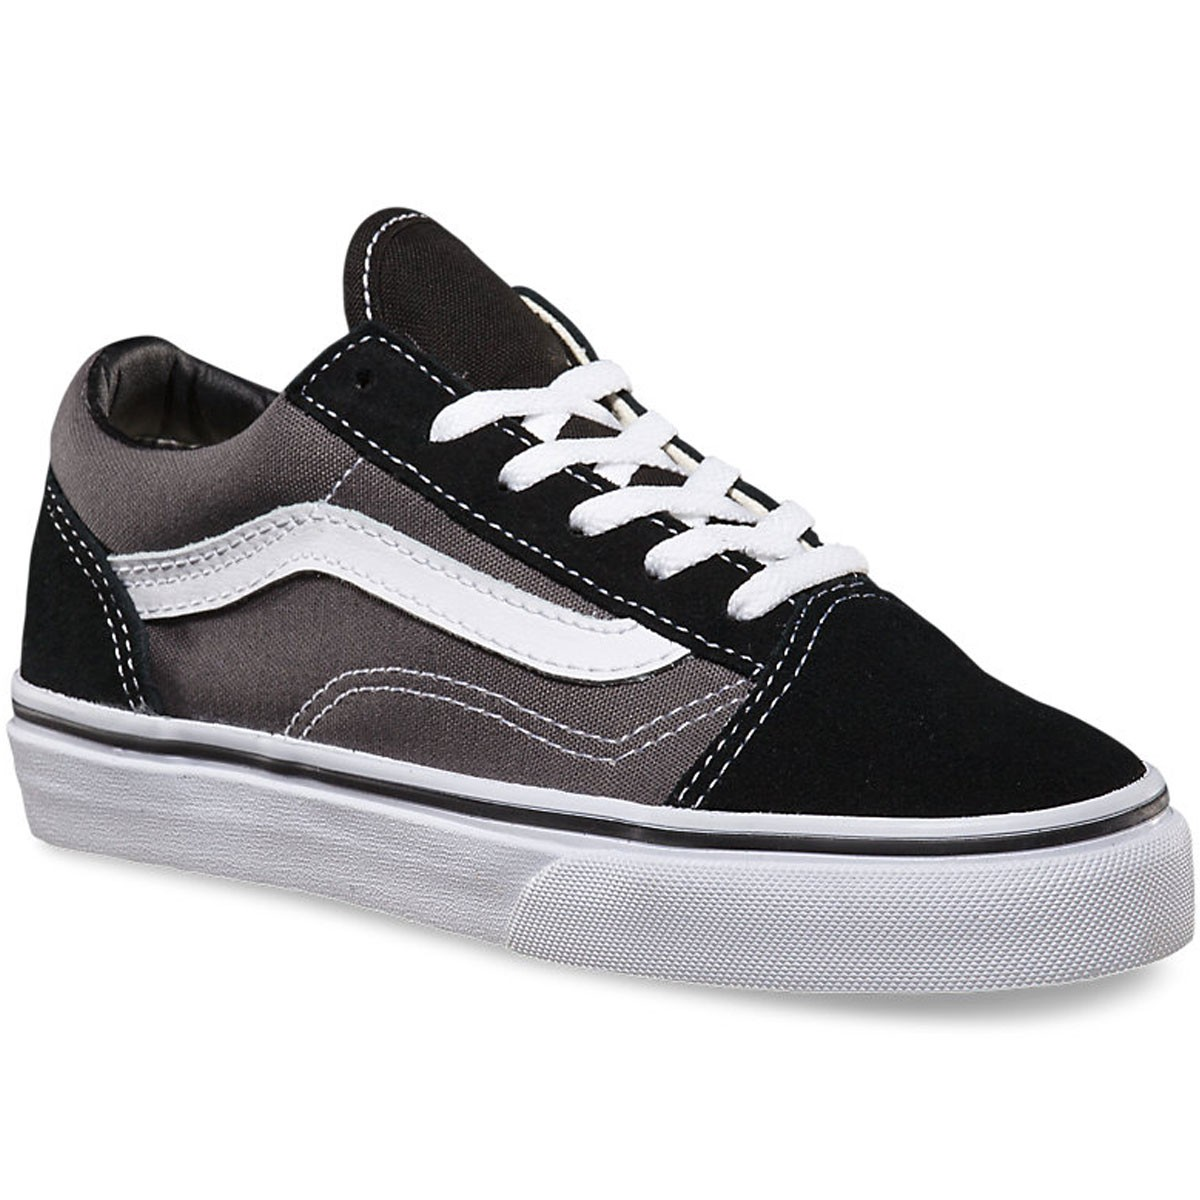 vans toddler shoes old skool. Black Bedroom Furniture Sets. Home Design Ideas